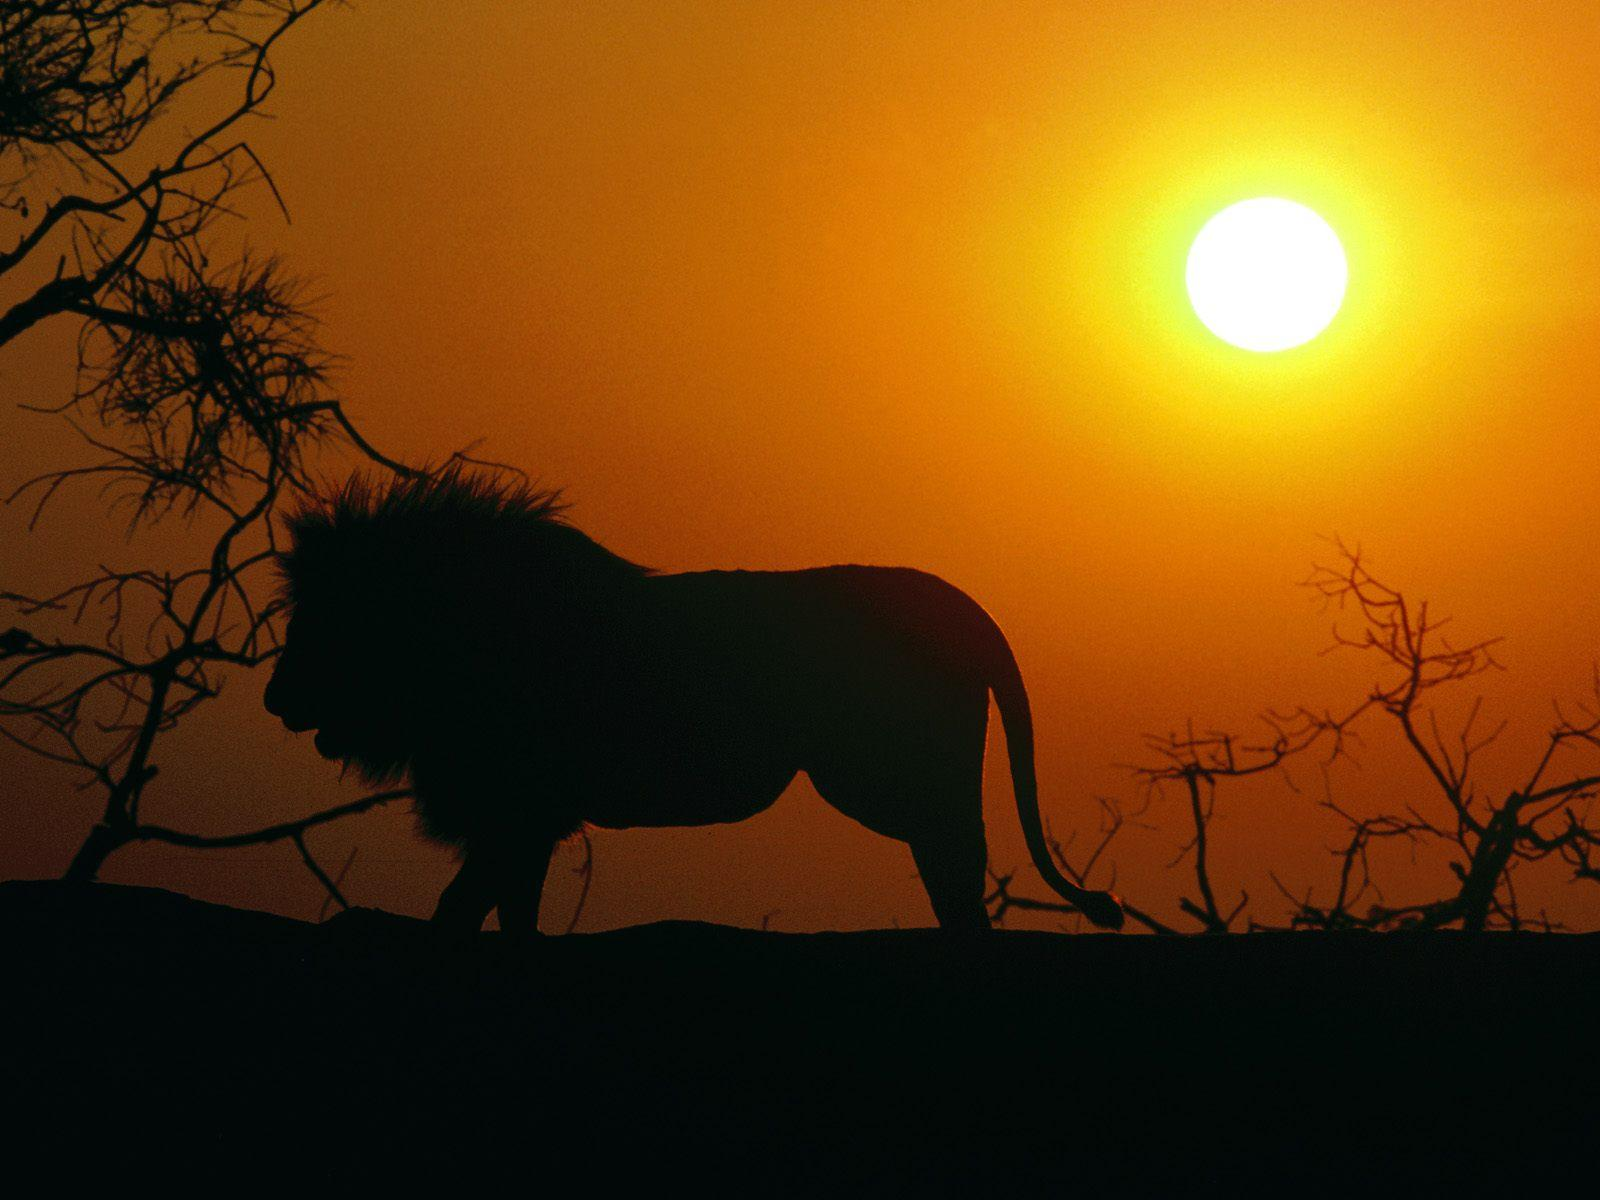 Collection Of Best Animal Wallpapers: Best Resolution Wallpaper: Lion Best HD Wallpaper